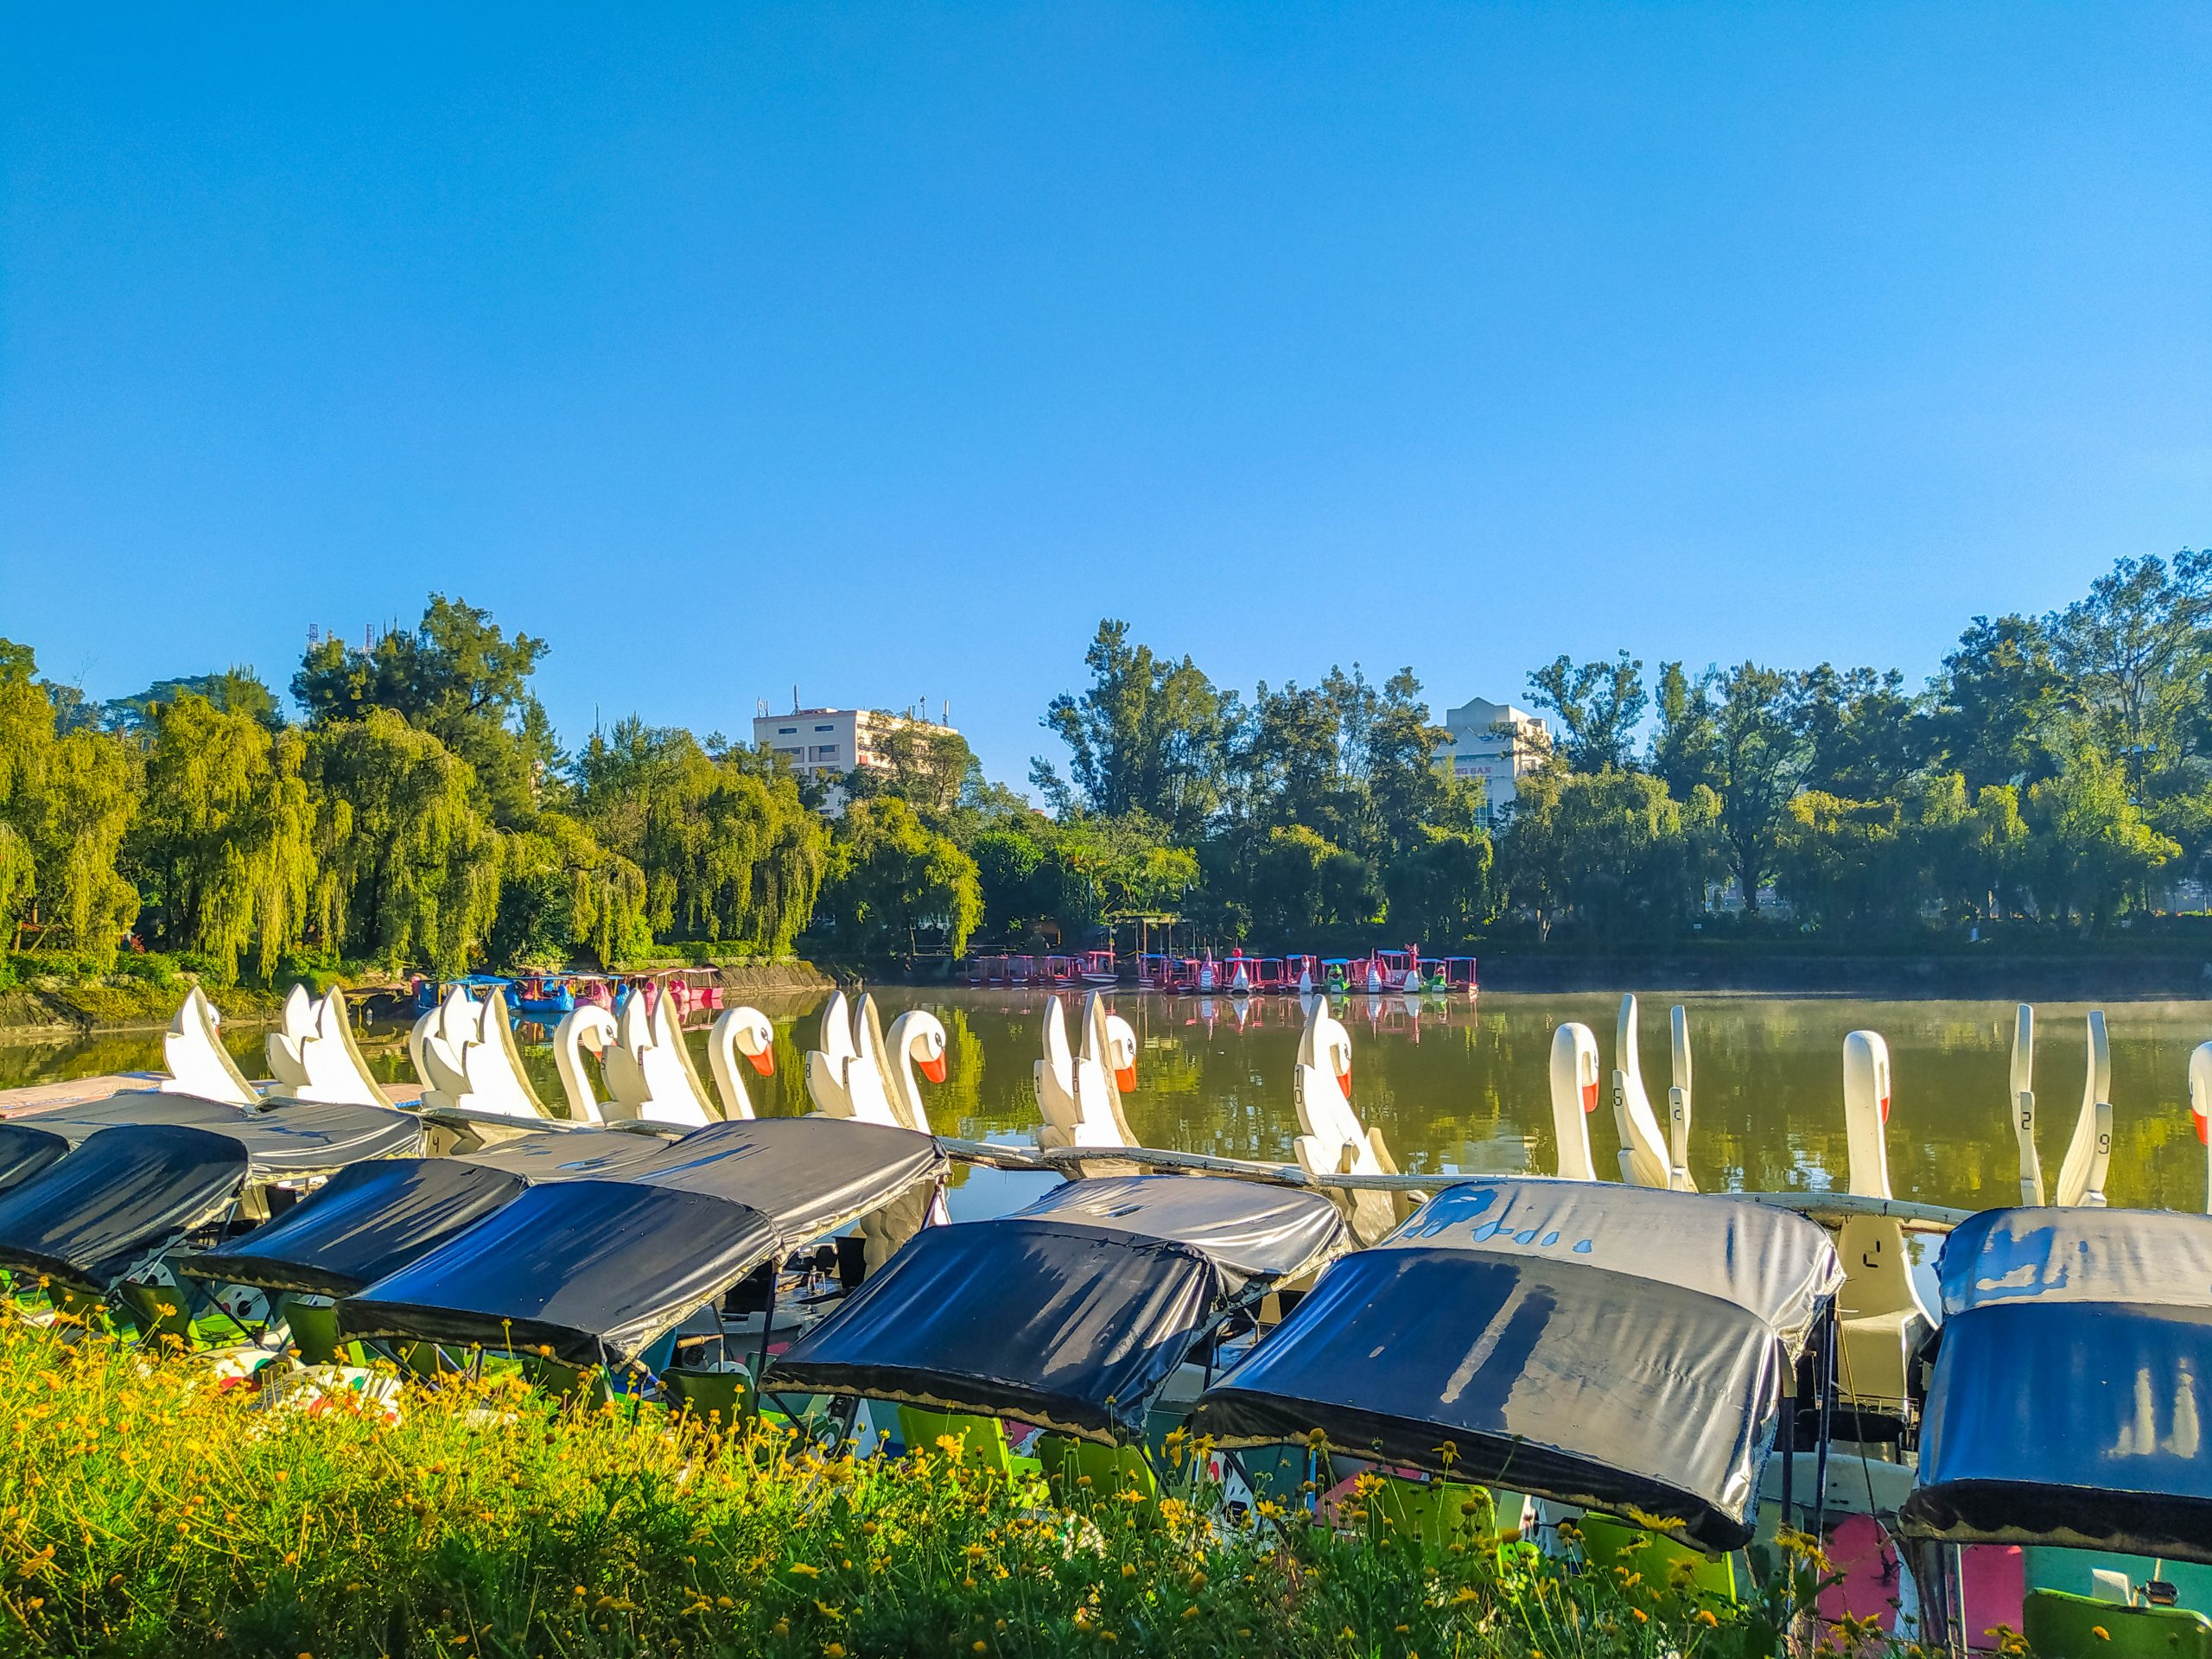 A row of boats moored on the side of the surface of Burnham Lake underneath a blue sky